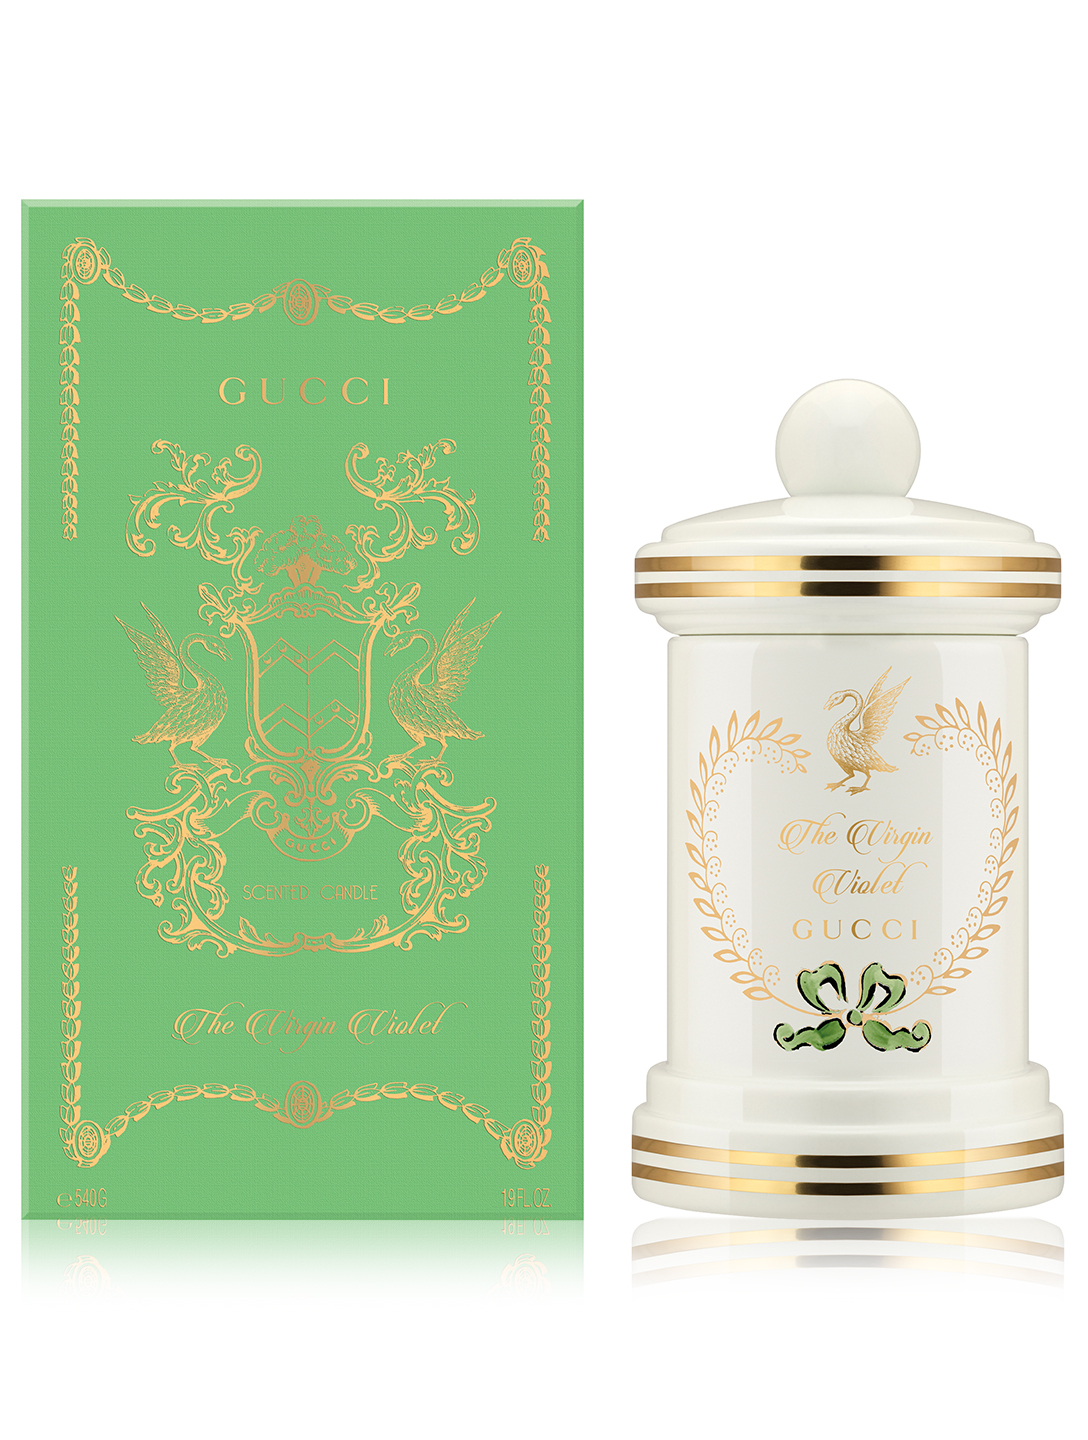 GUCCI Bougie parfumée The Virgin Violet, collection The Alchemist's Garden Beauté